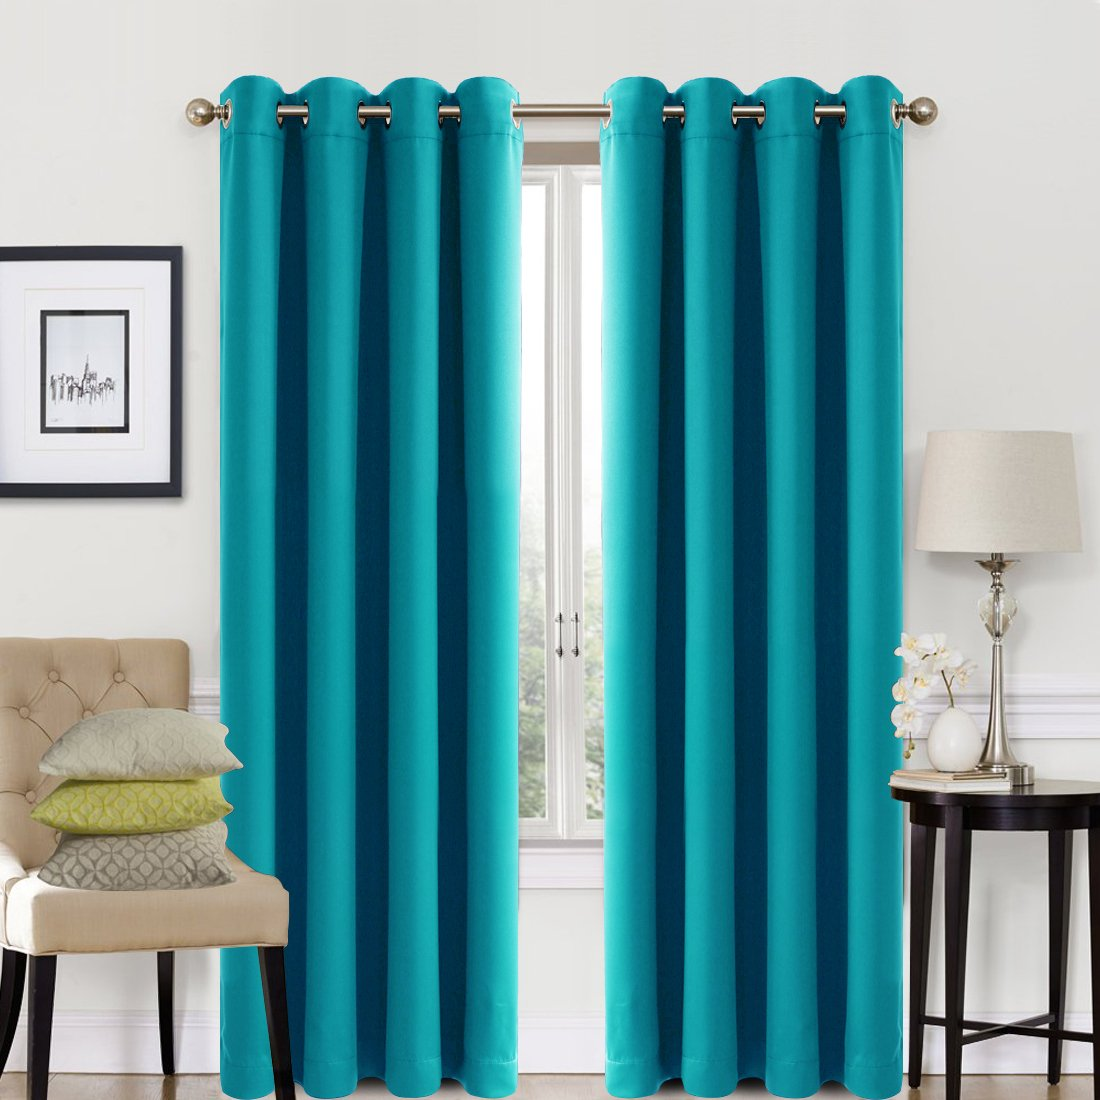 EASELAND Blackout Curtains 2 Panels Set Room Darkening